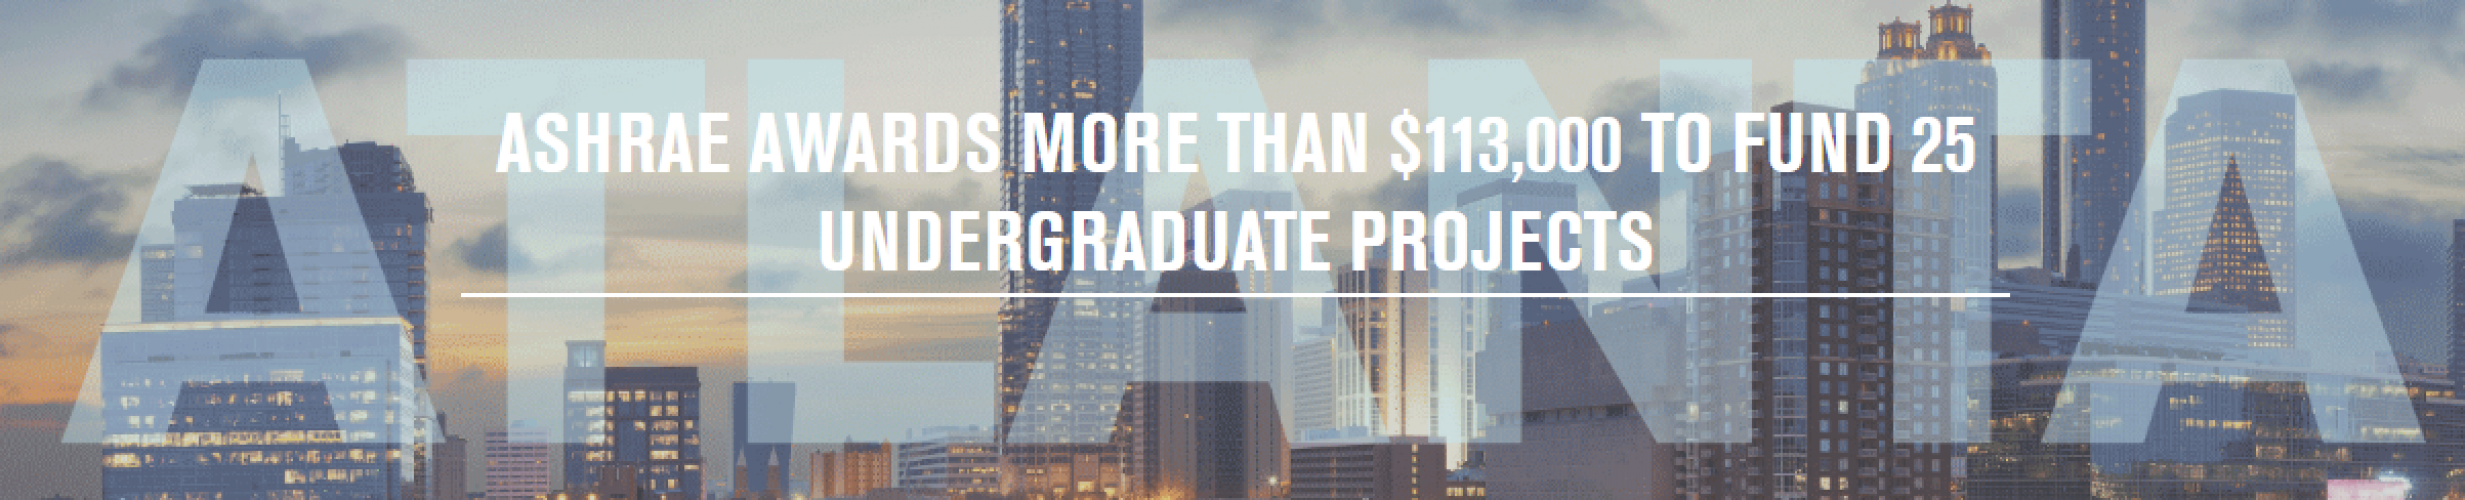 ashrae-awards-more-than-$113,000-to-fund-25-undergraduate-projects